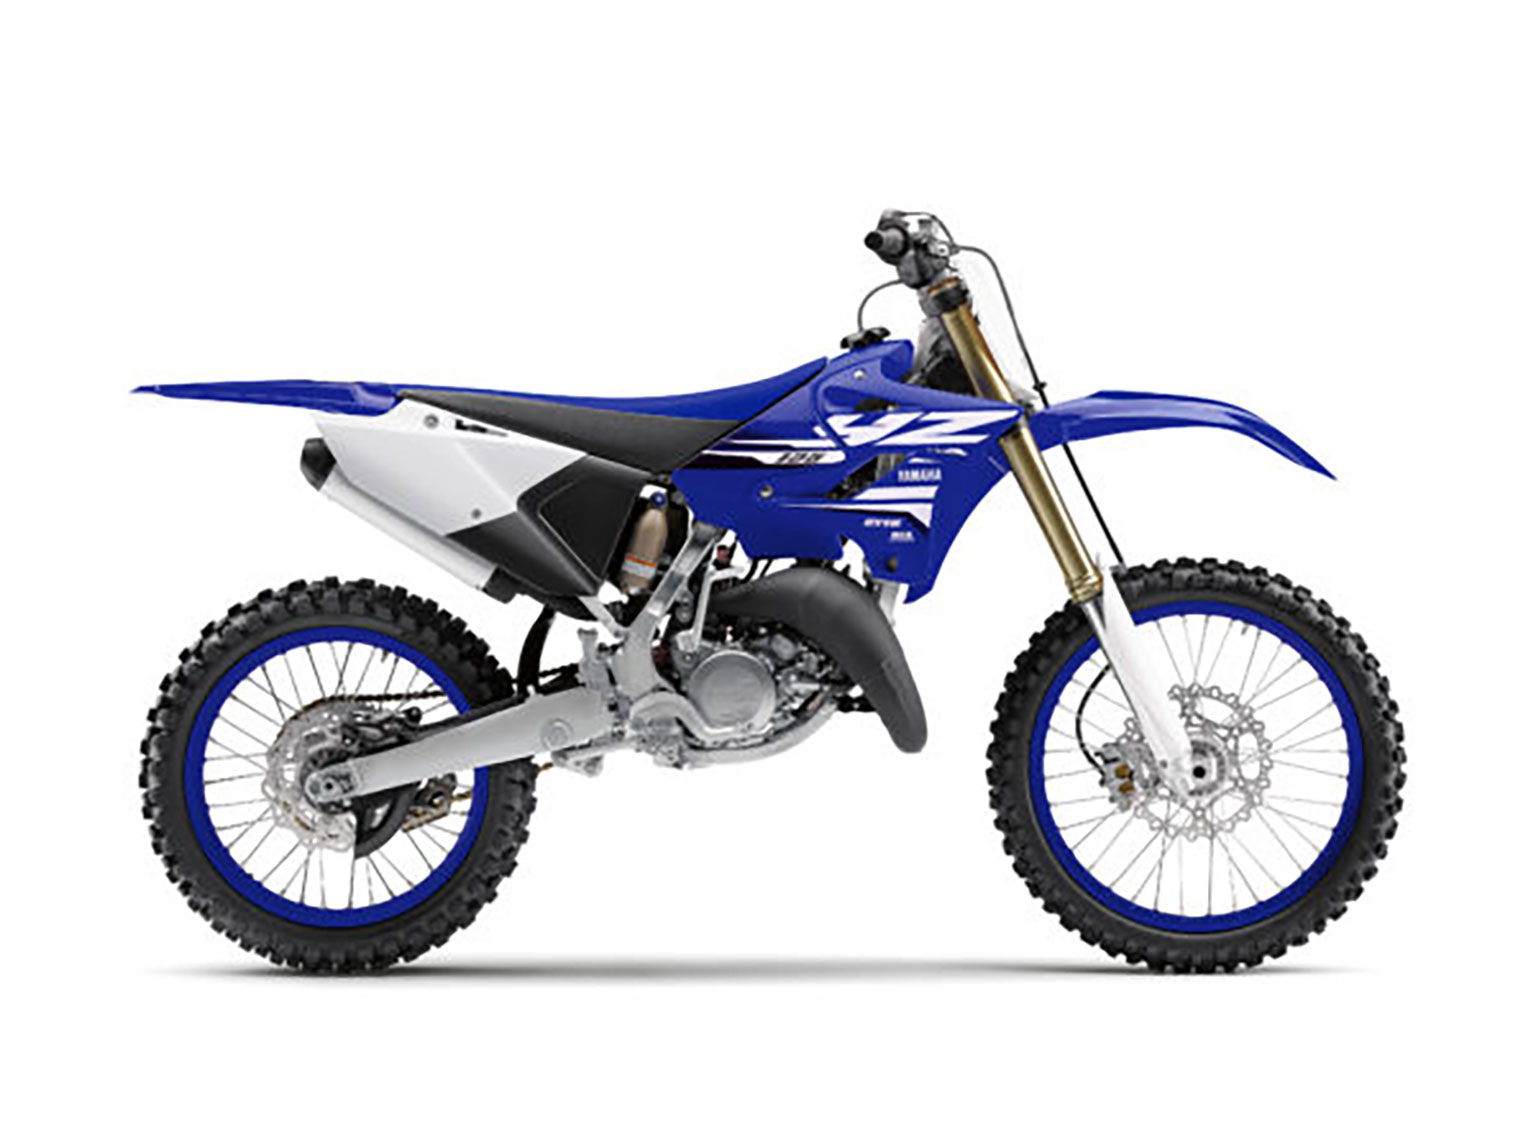 The YZ125 has not changed hugely for years